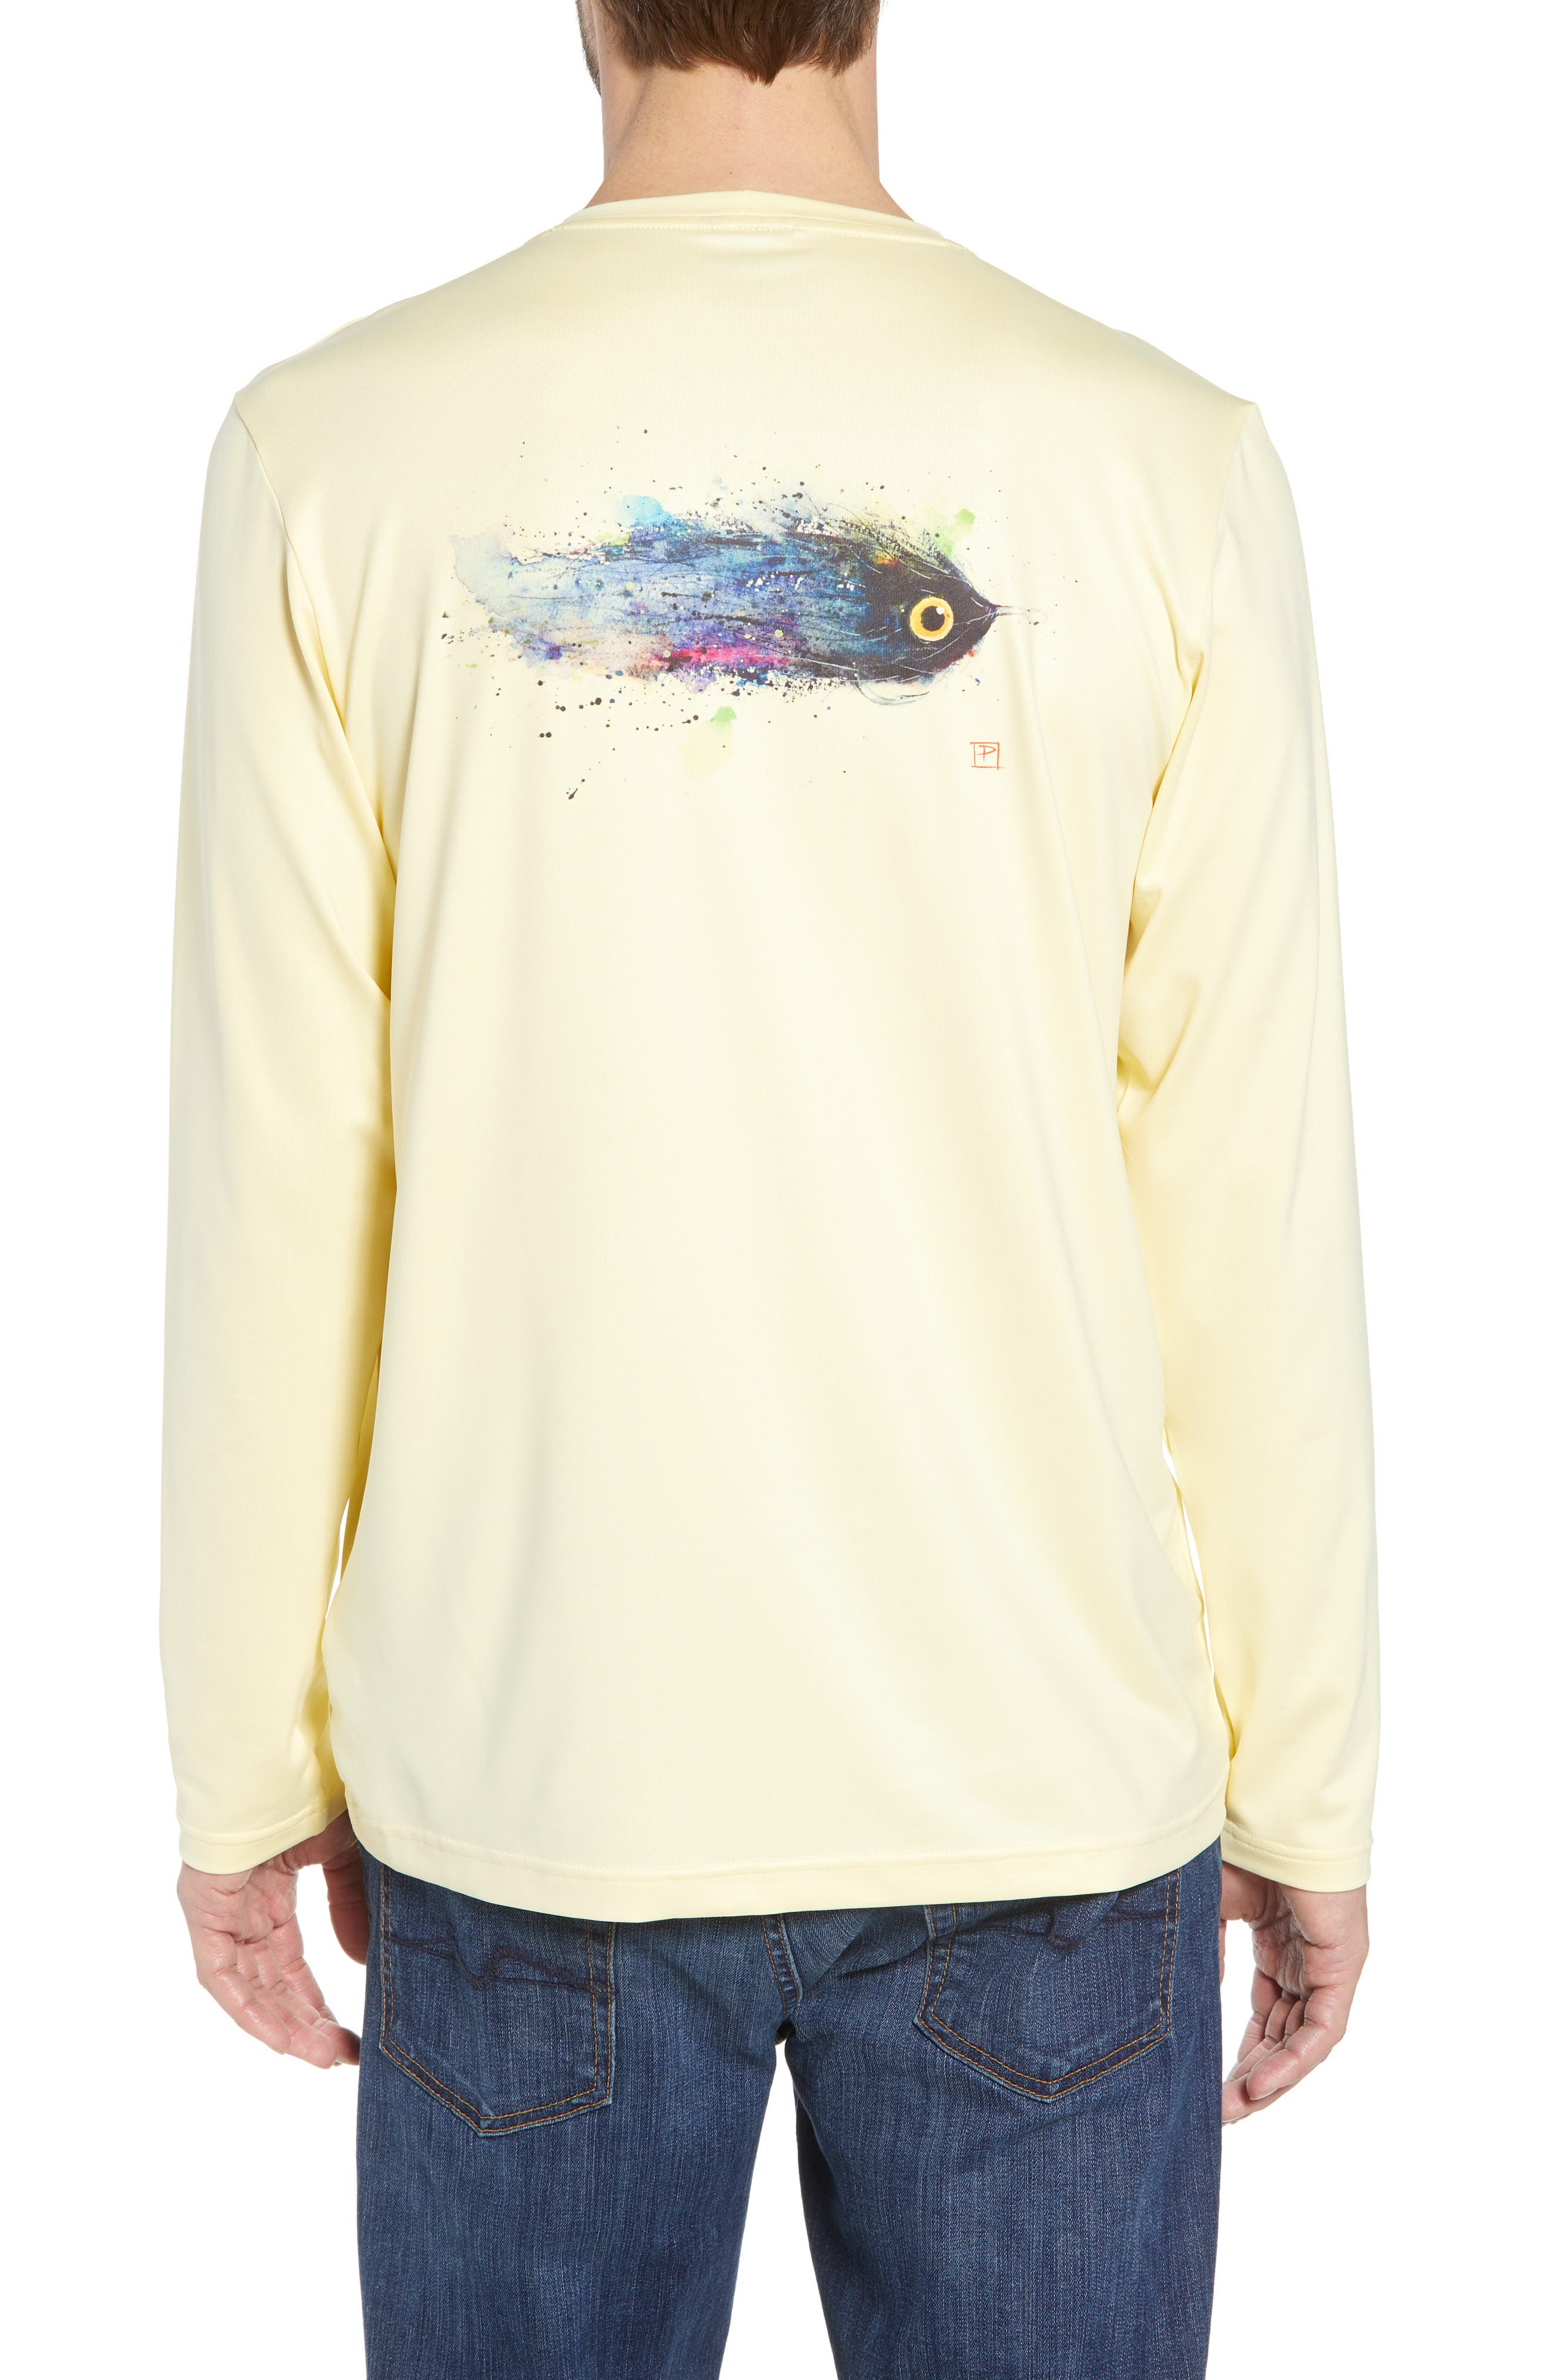 Tech Fish Graphic Long Sleeve T-Shirt,                             Alternate thumbnail 2, color,                             Lucky Fly/ Crest Yellow